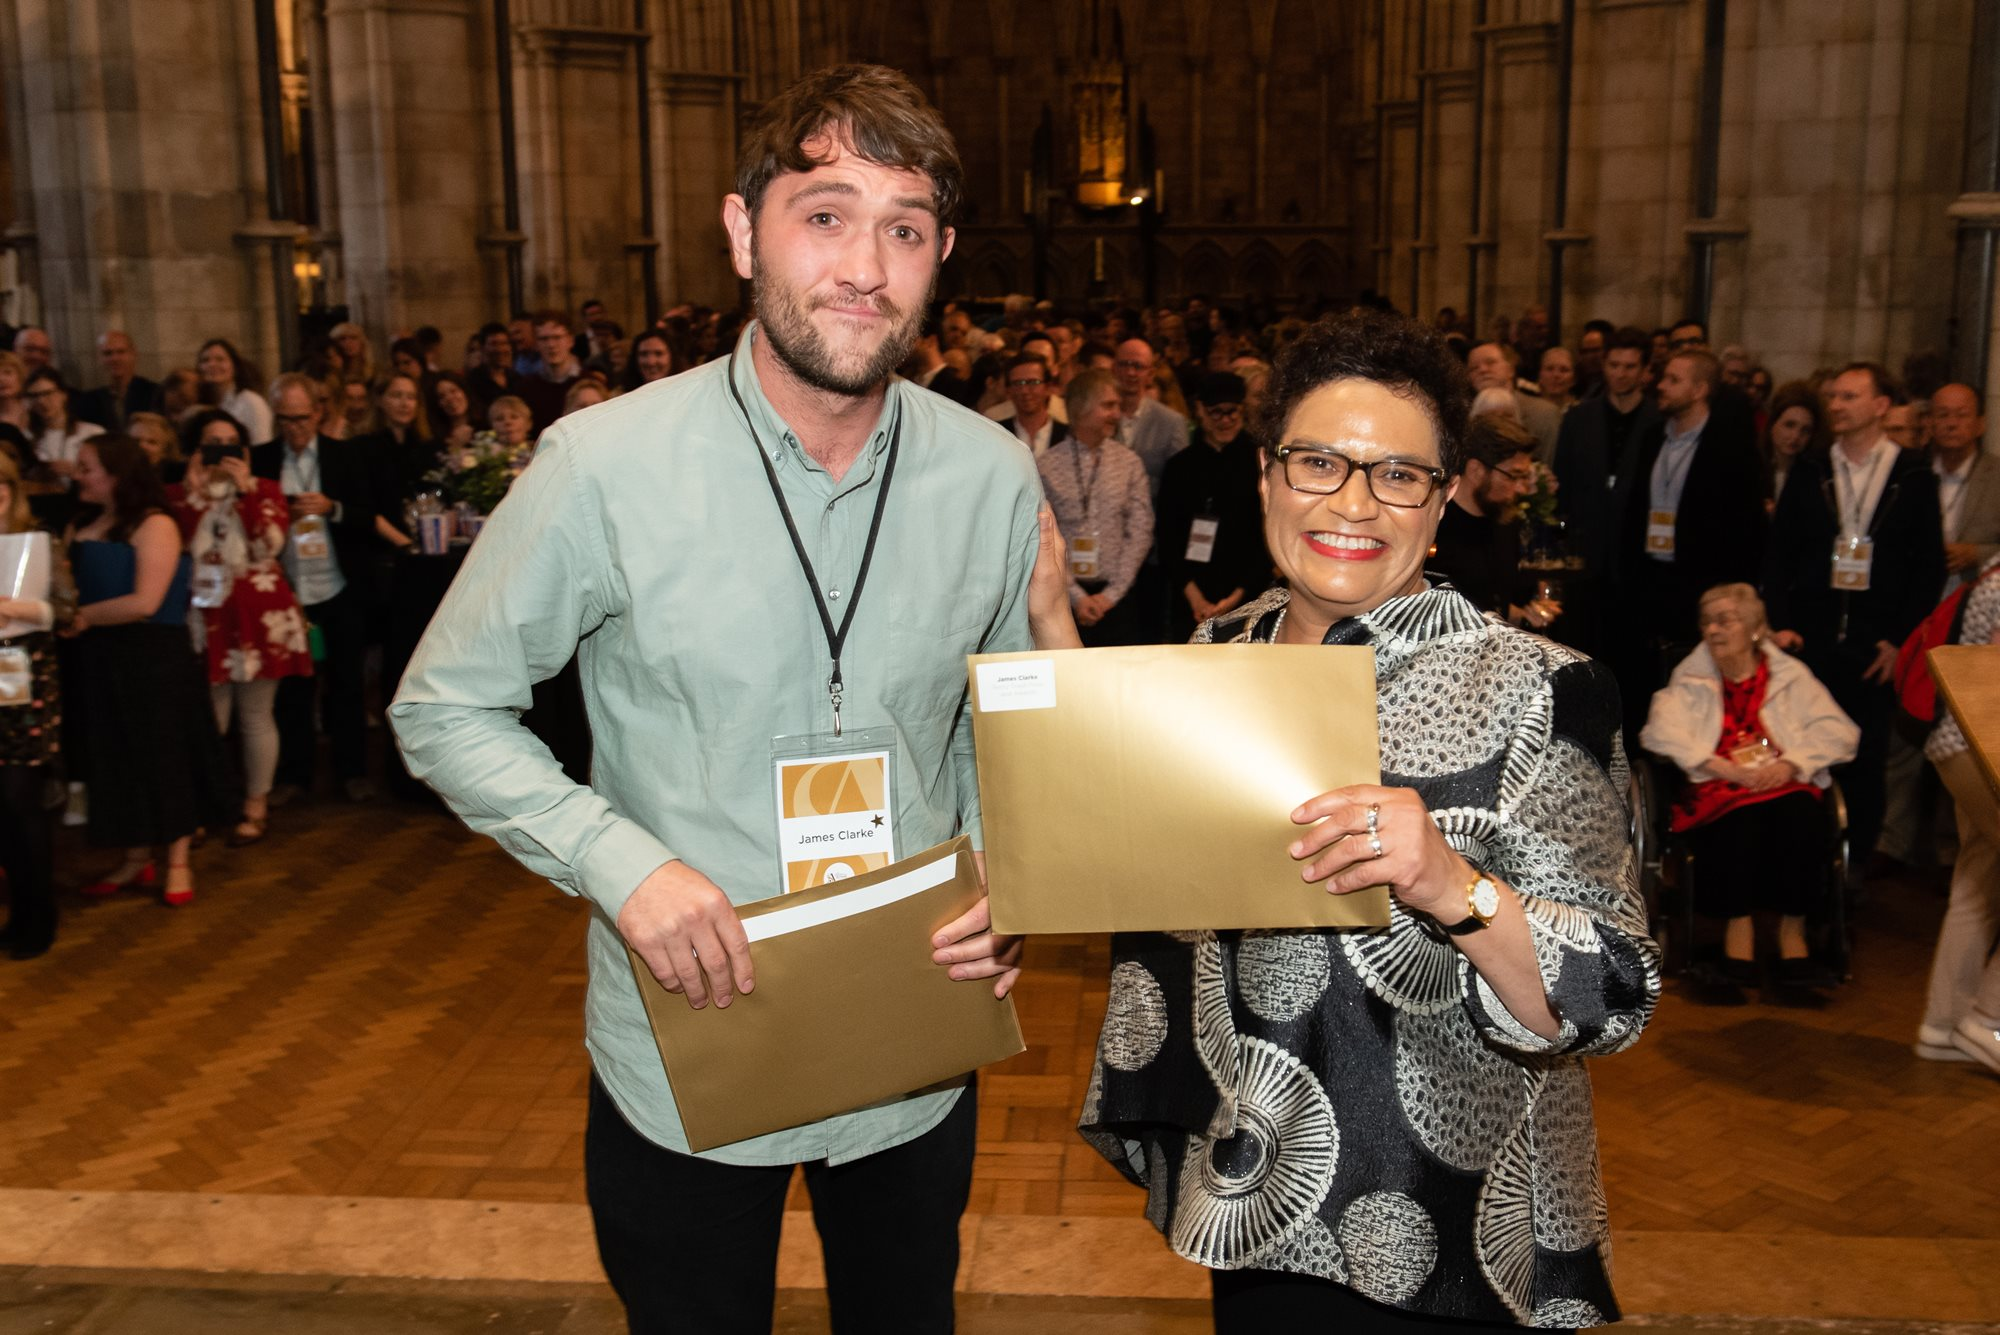 'Writing is ... a real act of faith' – James Clarke, Betty Trask Prize 2019 winner